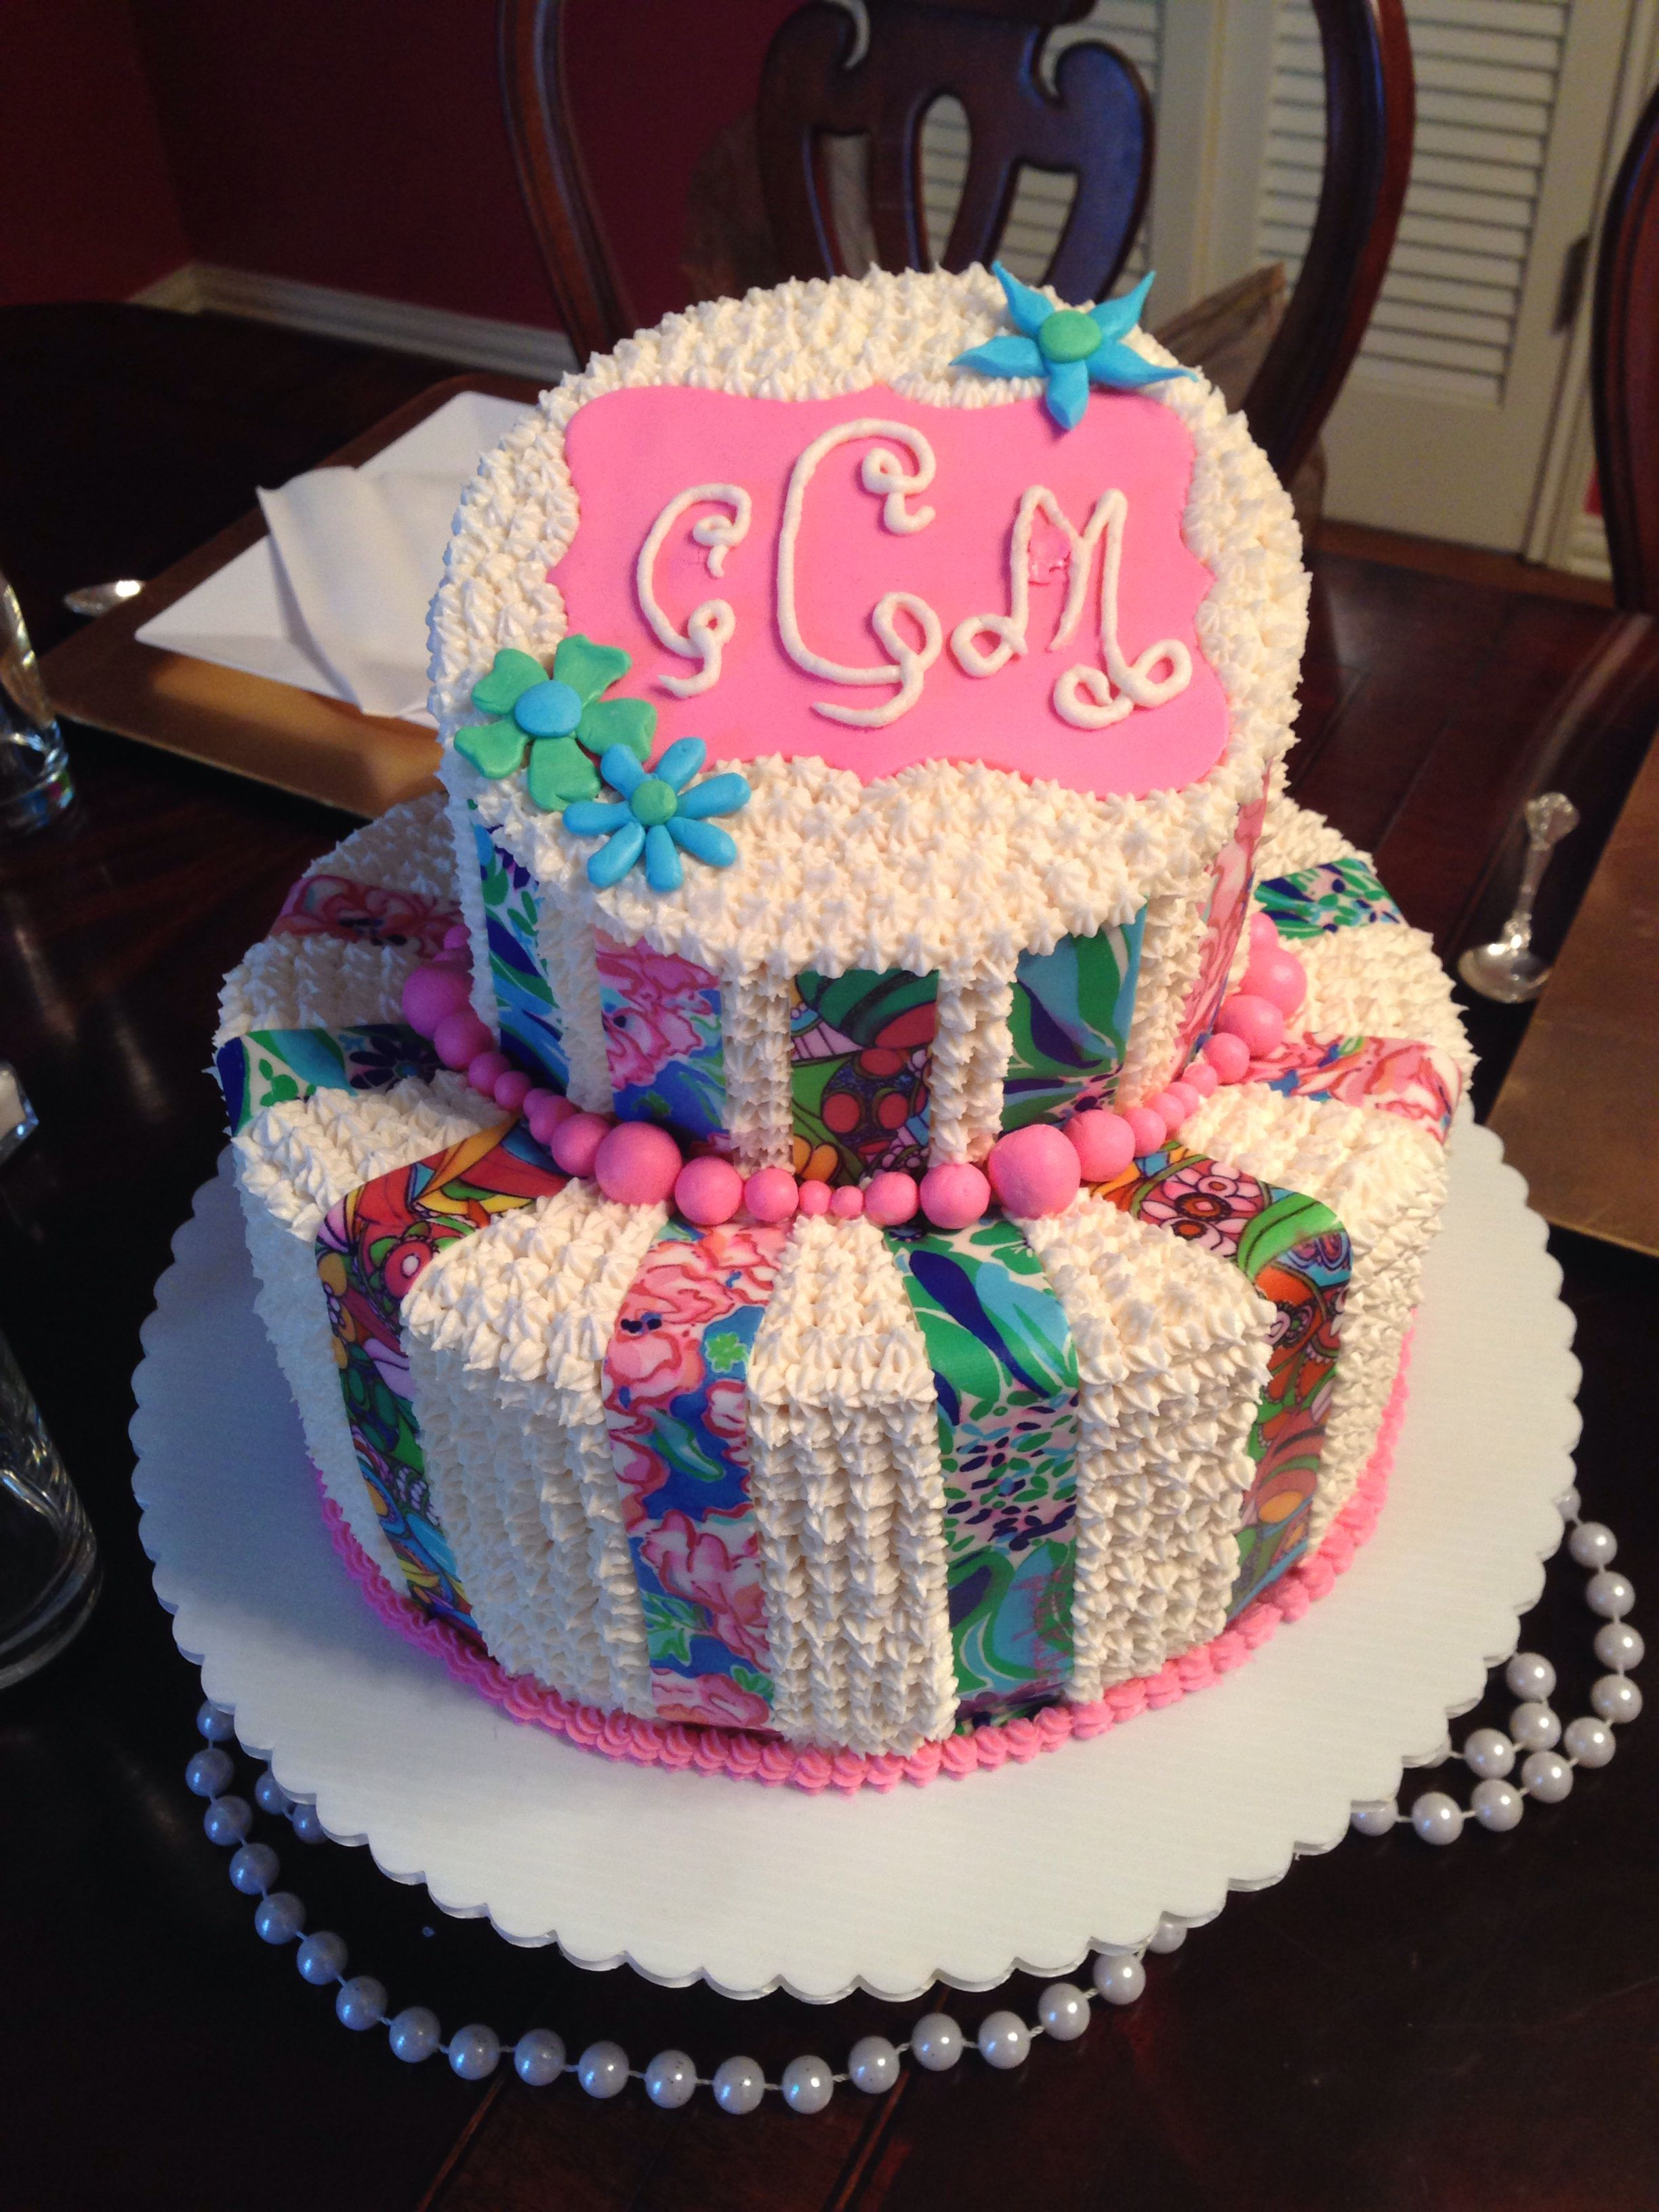 Enjoyable Lilly Pulitzer Monogram Cake With Images Adult Birthday Cakes Funny Birthday Cards Online Alyptdamsfinfo